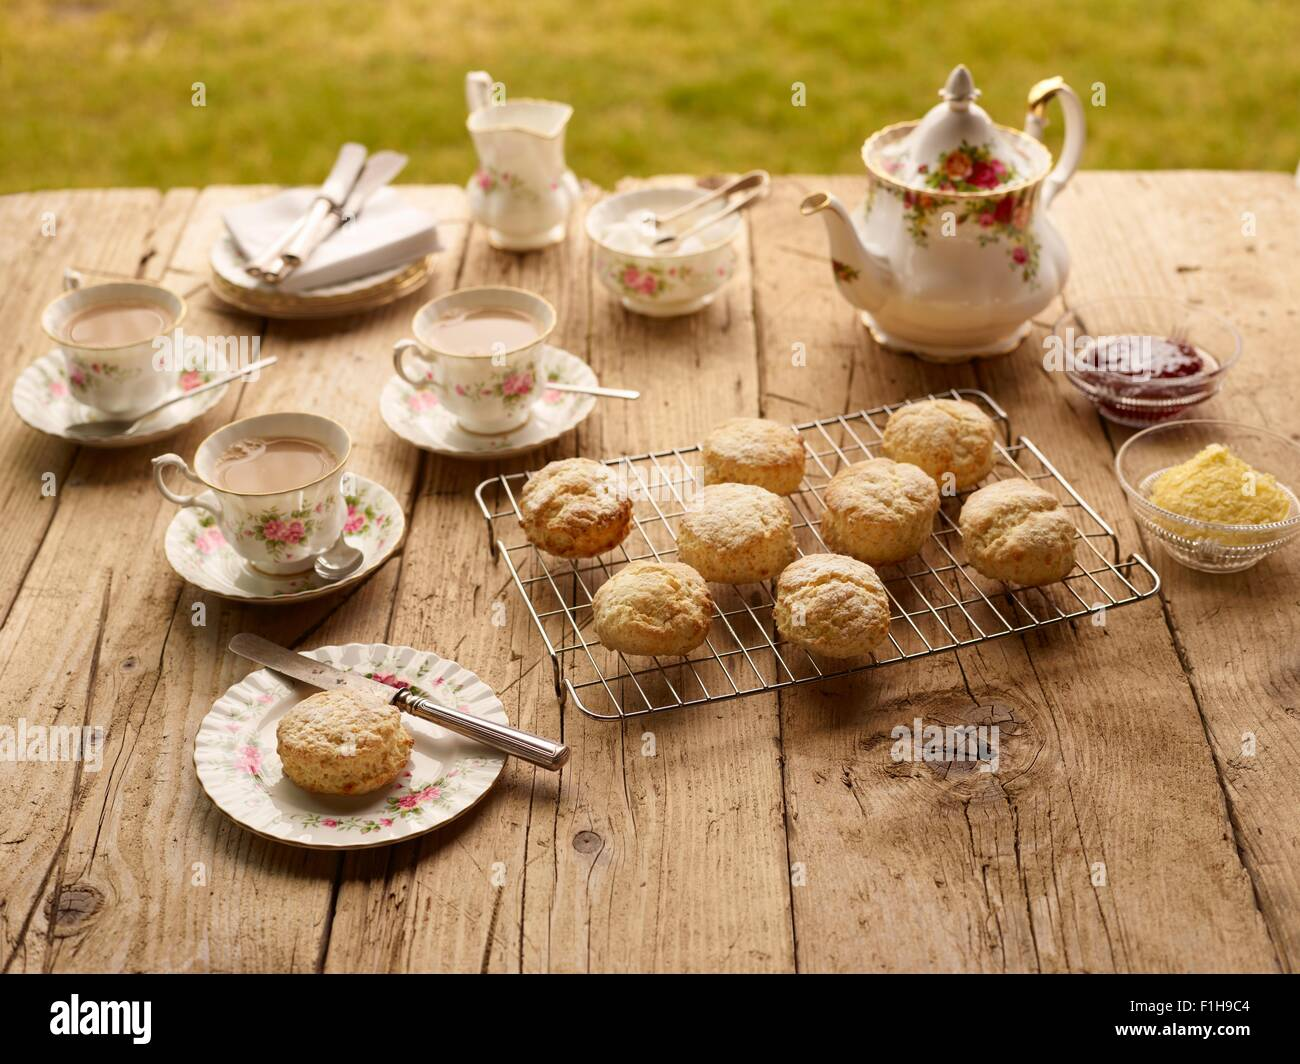 Table with afternoon tea of with fresh baked scones with jam and clotted cream - Stock Image